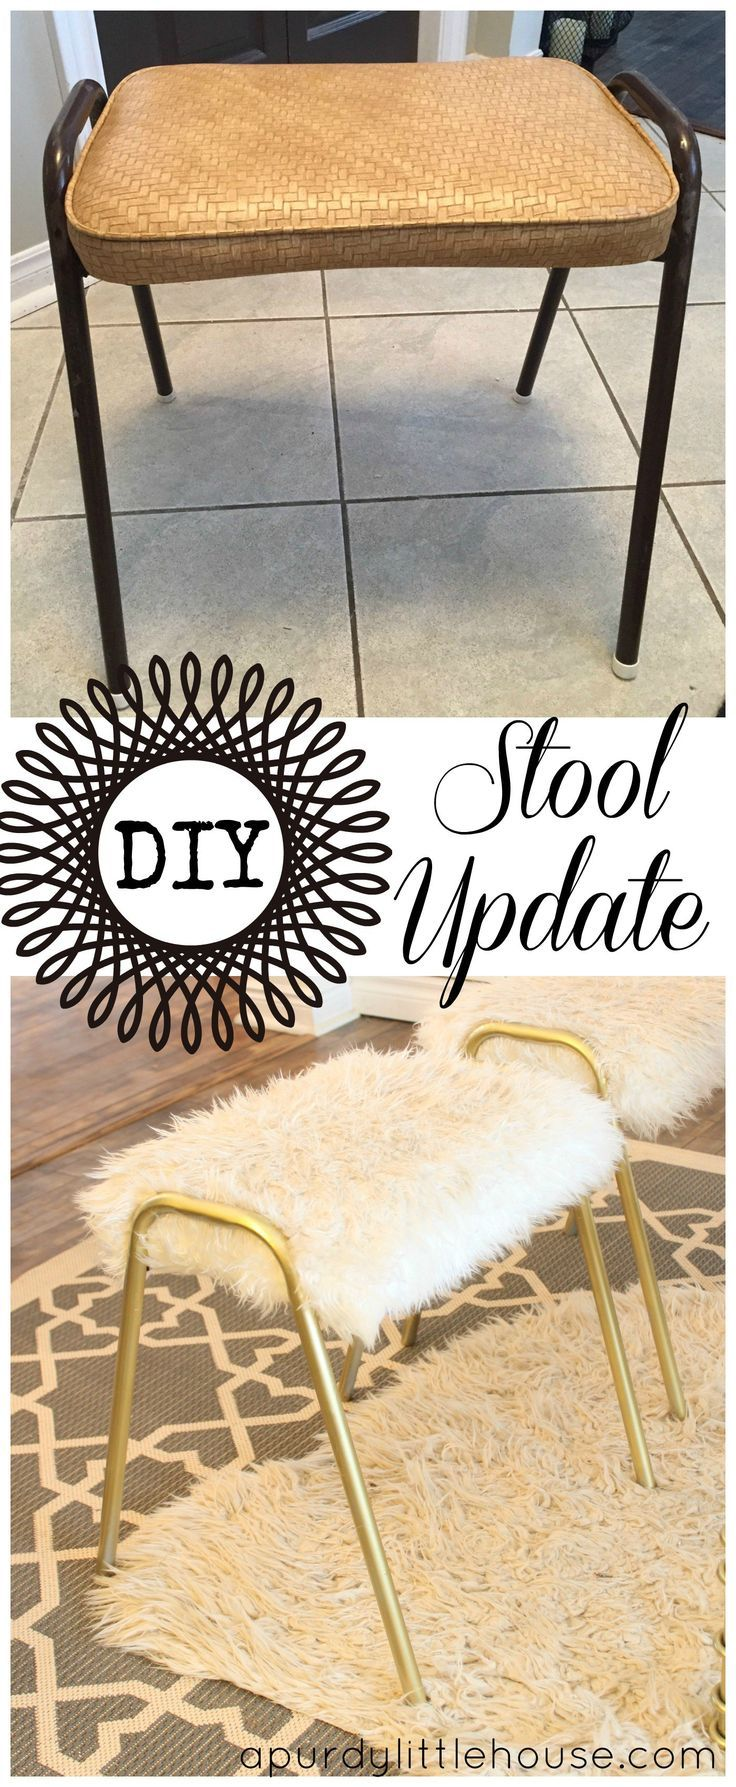 How To Reupholster An Old Stool Painting Furniture Diy Diy Stool Furniture Diy